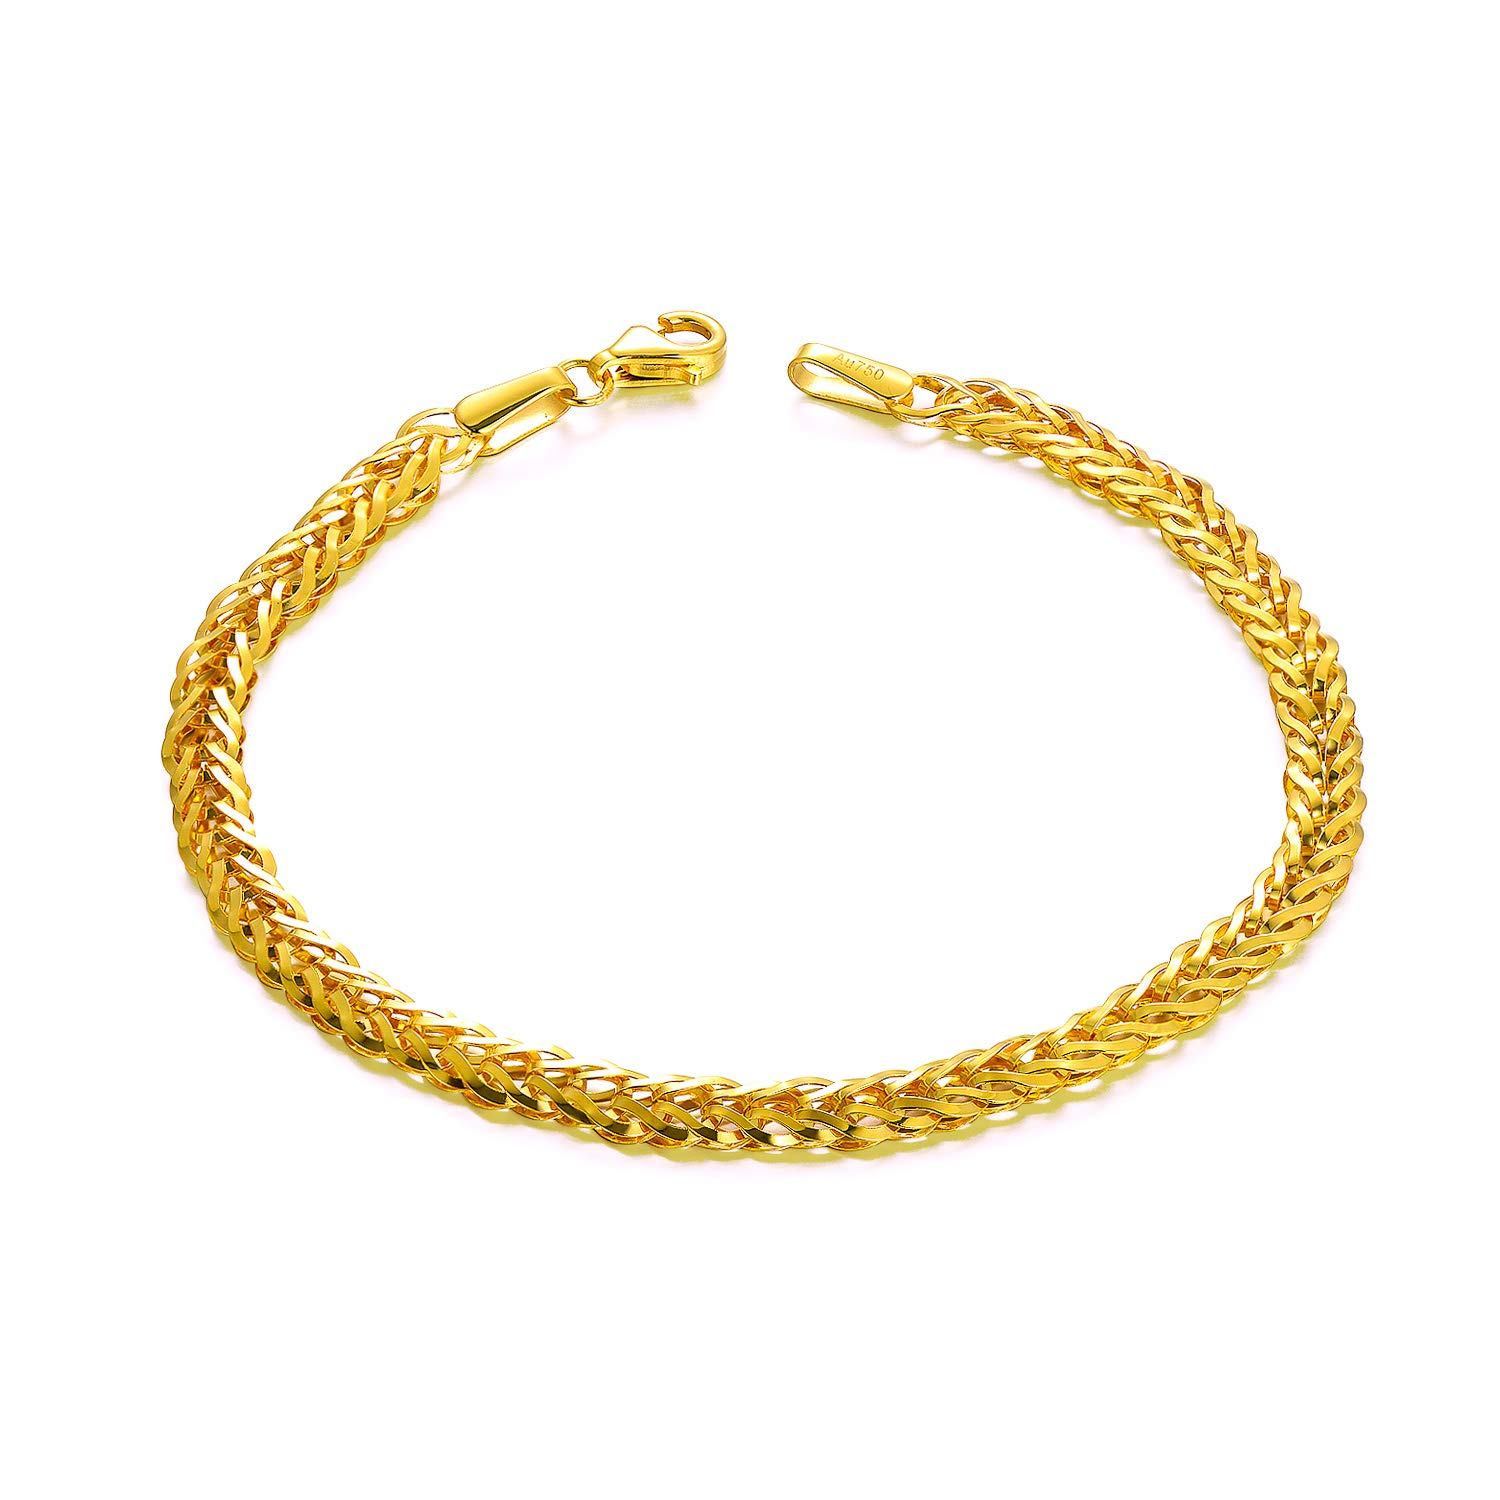 SISGEM Solid 18k Yellow Gold Celtic Chain Bracelet, Fine Link Jewelry for Women, 4 mm